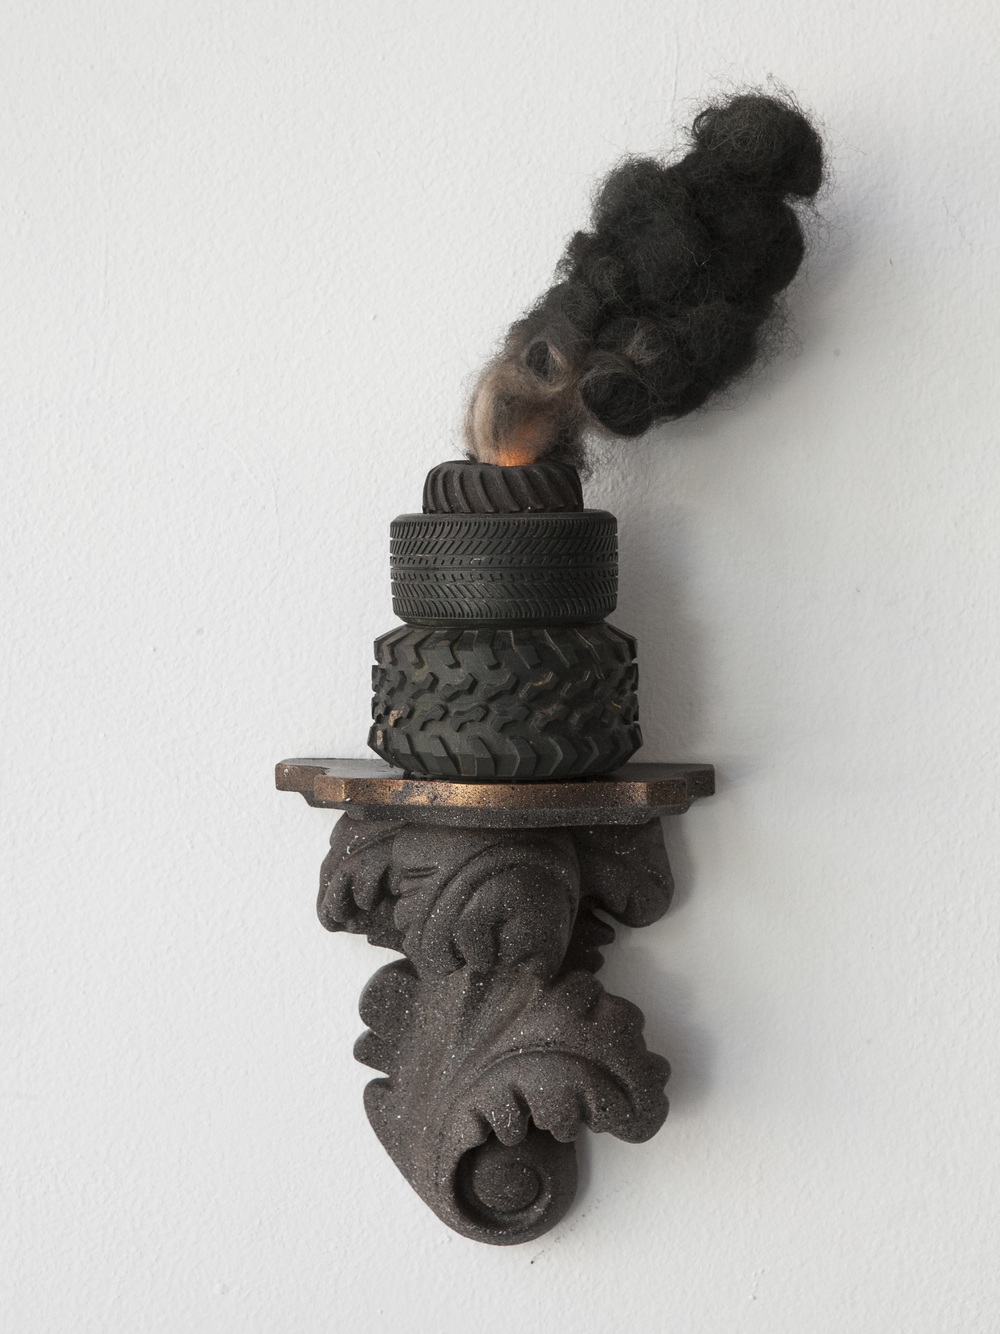 "APOCALITE 1 by Leighton Kelly Miniature Sculpture made of found objects on shelf. 7"" x 13"" x 5"". 2016."